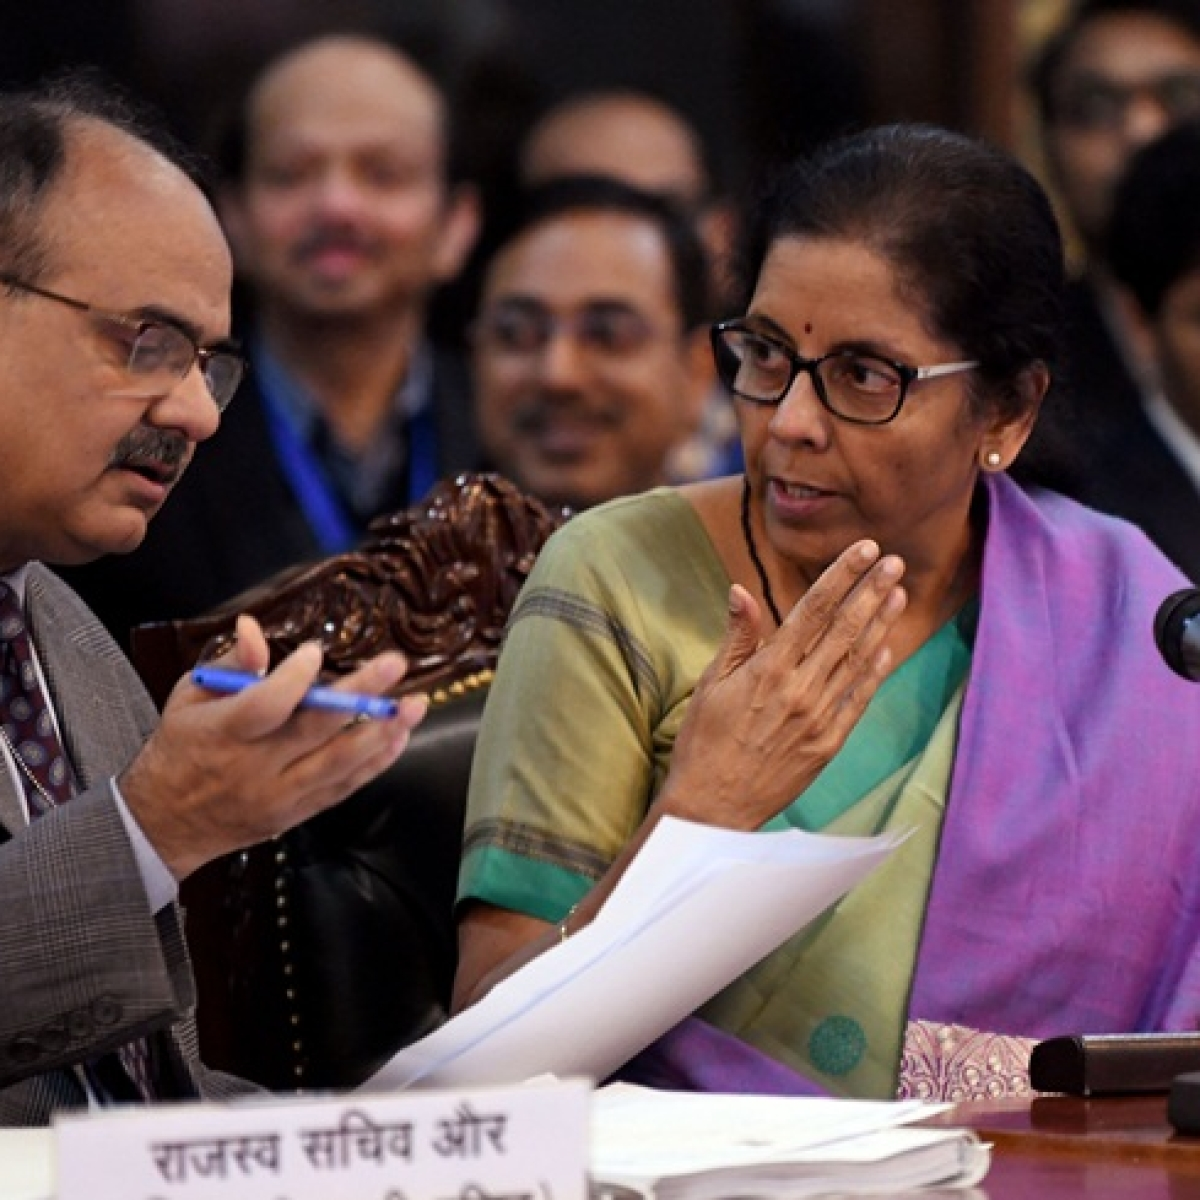 GST Council sets up 'Grievance Redressal Committee' to address issues